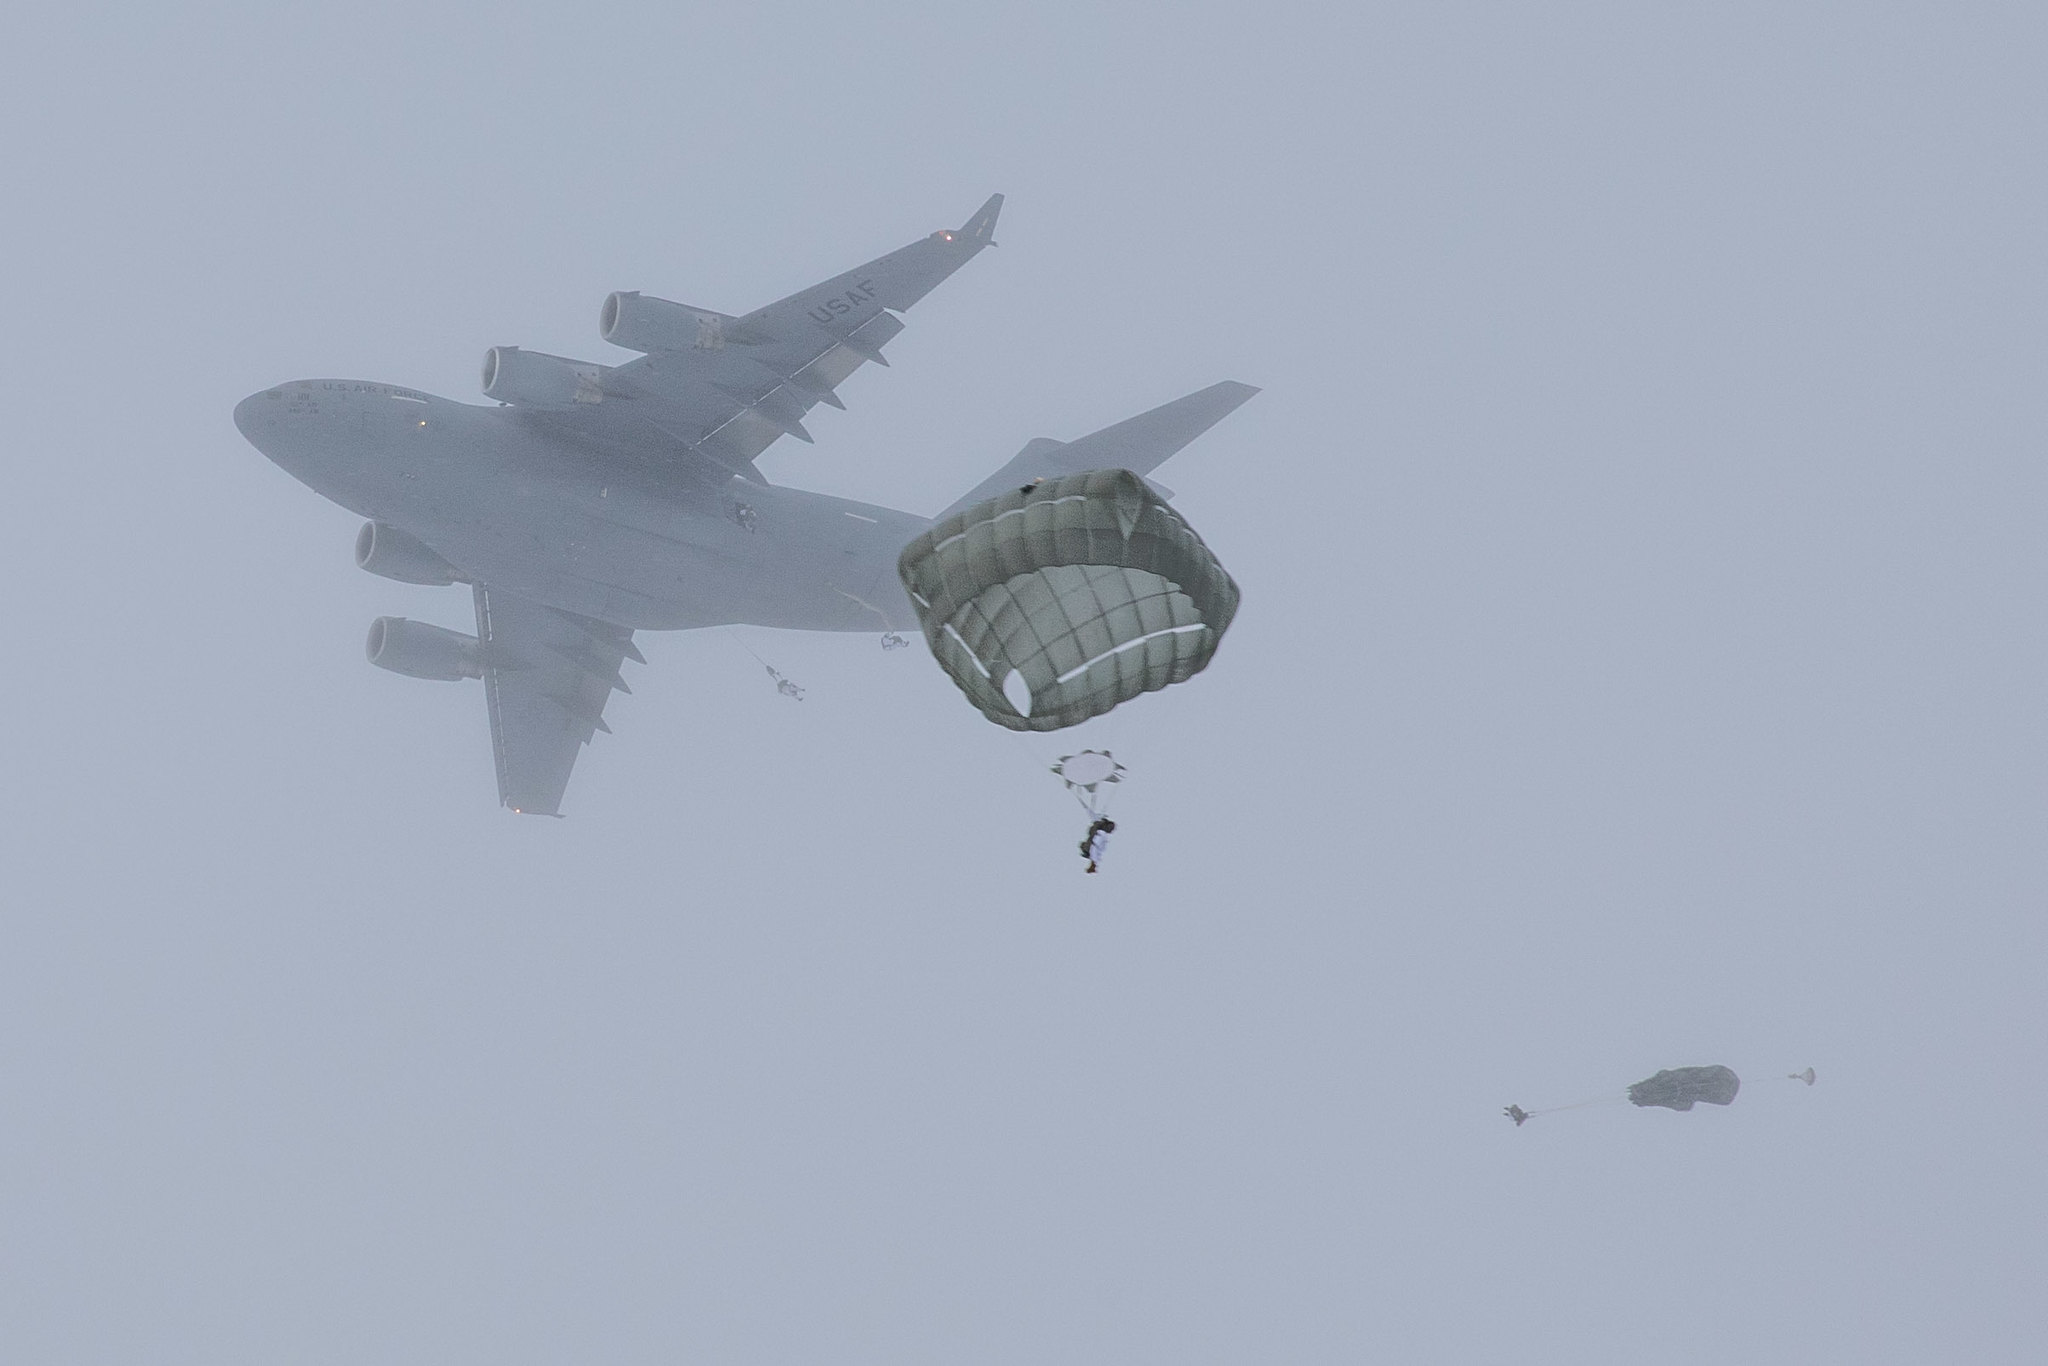 Paratroopers conduct an airborne operation at Malemute drop zone at Joint Base Elemendorf-Richardson, Alaska, Feb., 18, 2021. (Staff Sgt. Alex Skripnichuk/Army)